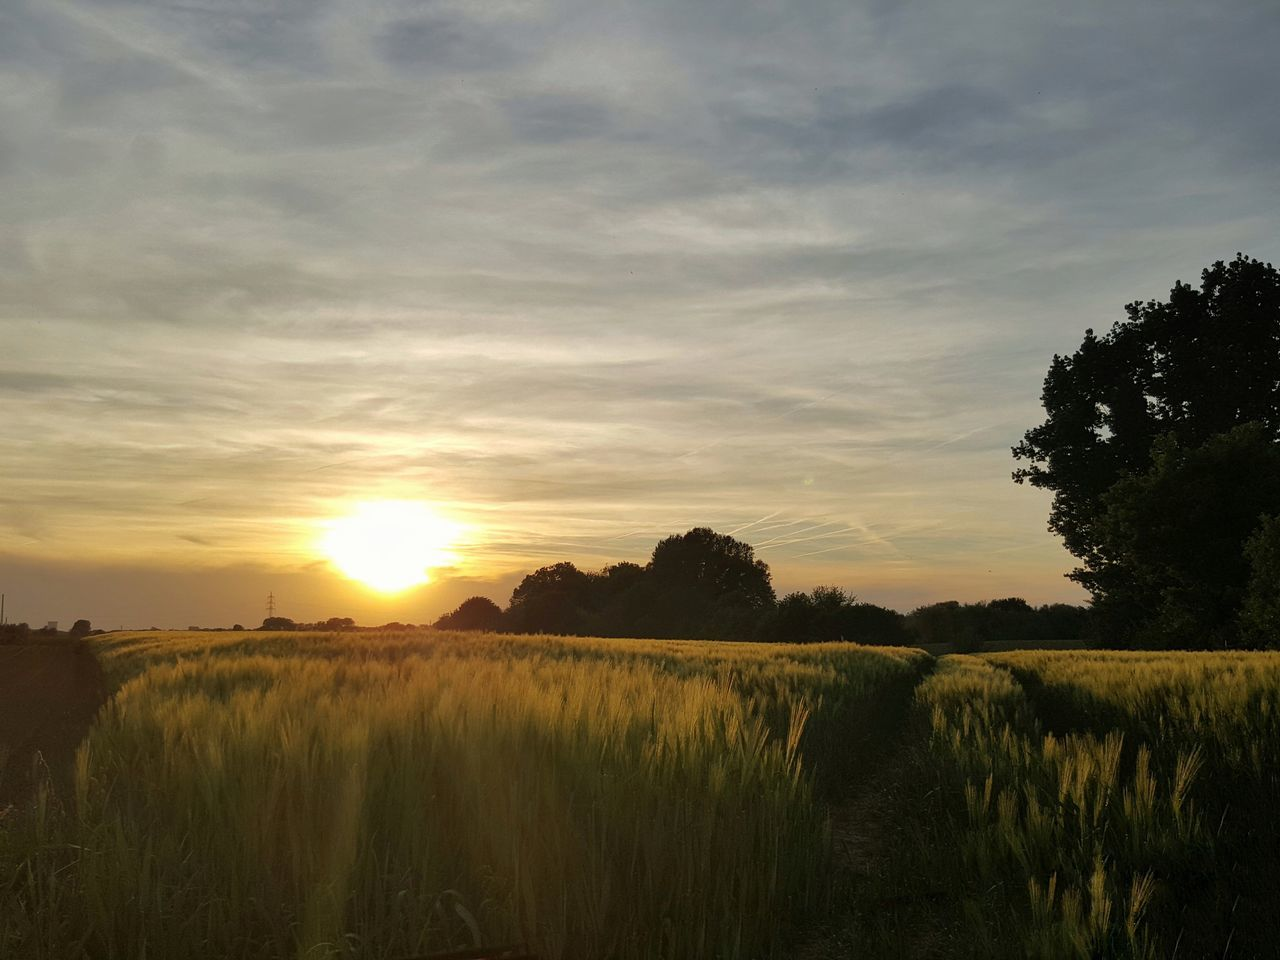 sunset, field, tranquil scene, landscape, tranquility, nature, agriculture, scenics, sky, beauty in nature, tree, rural scene, growth, no people, outdoors, grass, silhouette, plant, day